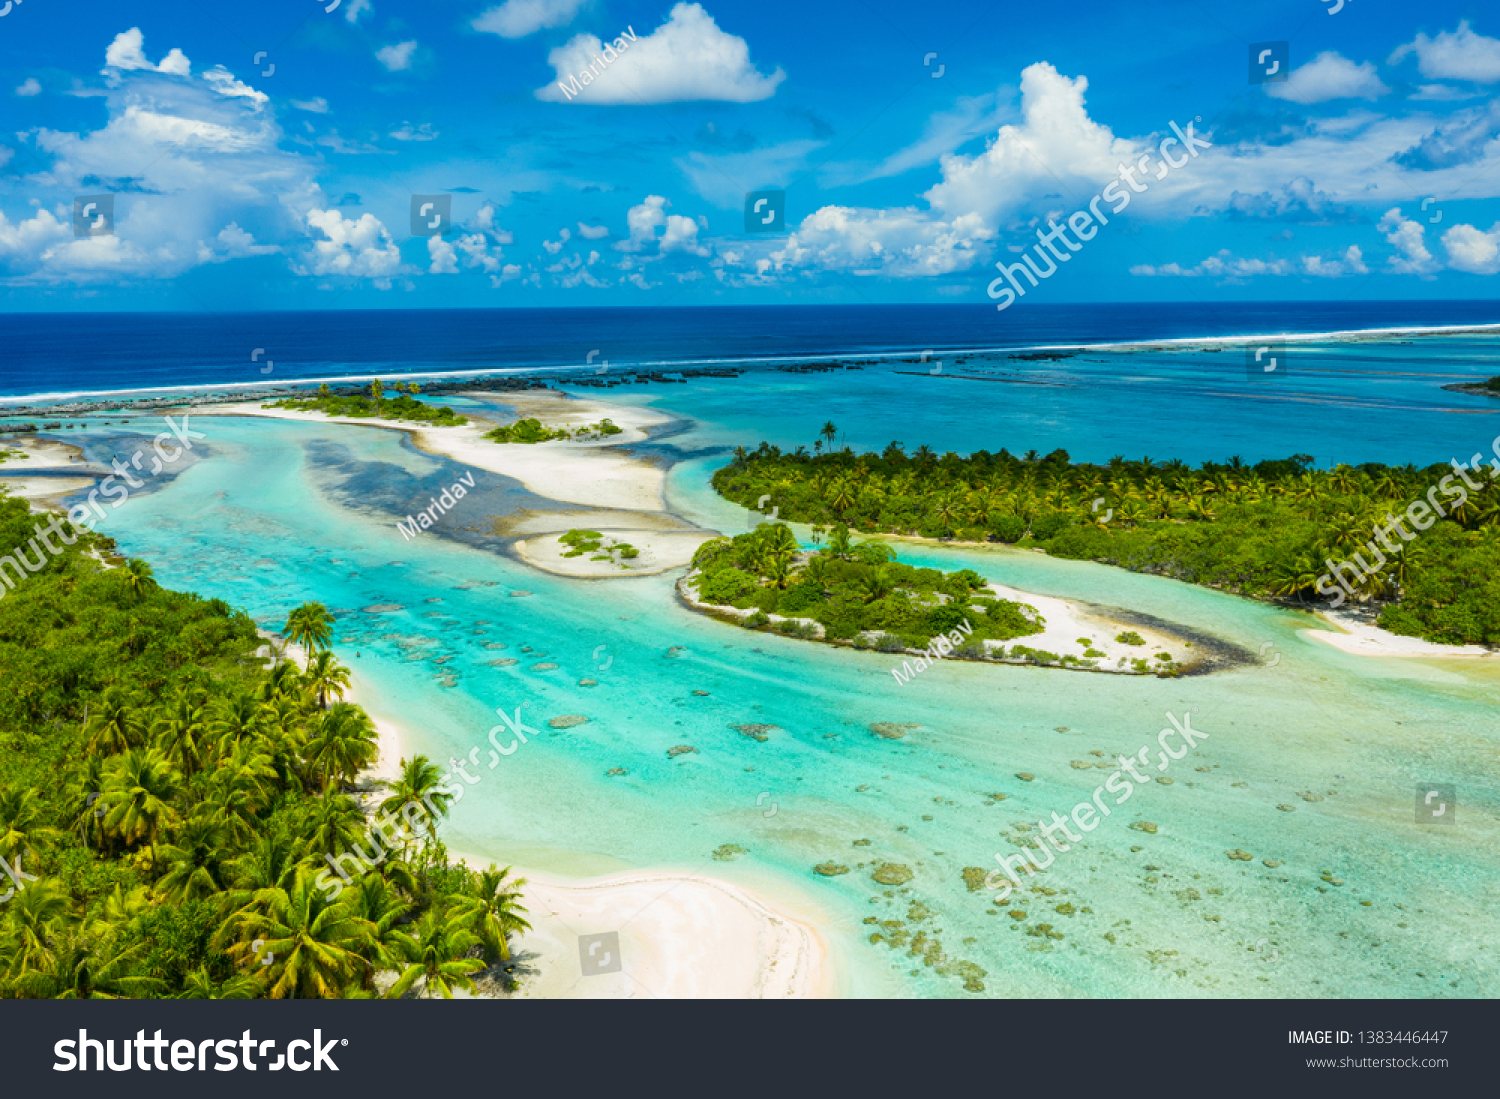 Rangiroa aerial drone video of atoll island motu and coral reef in French Polynesia, Tahiti. Amazing nature landscape with blue lagoon and Pacific Ocean. Tropical island paradise in Tuamotus Islands. #1383446447